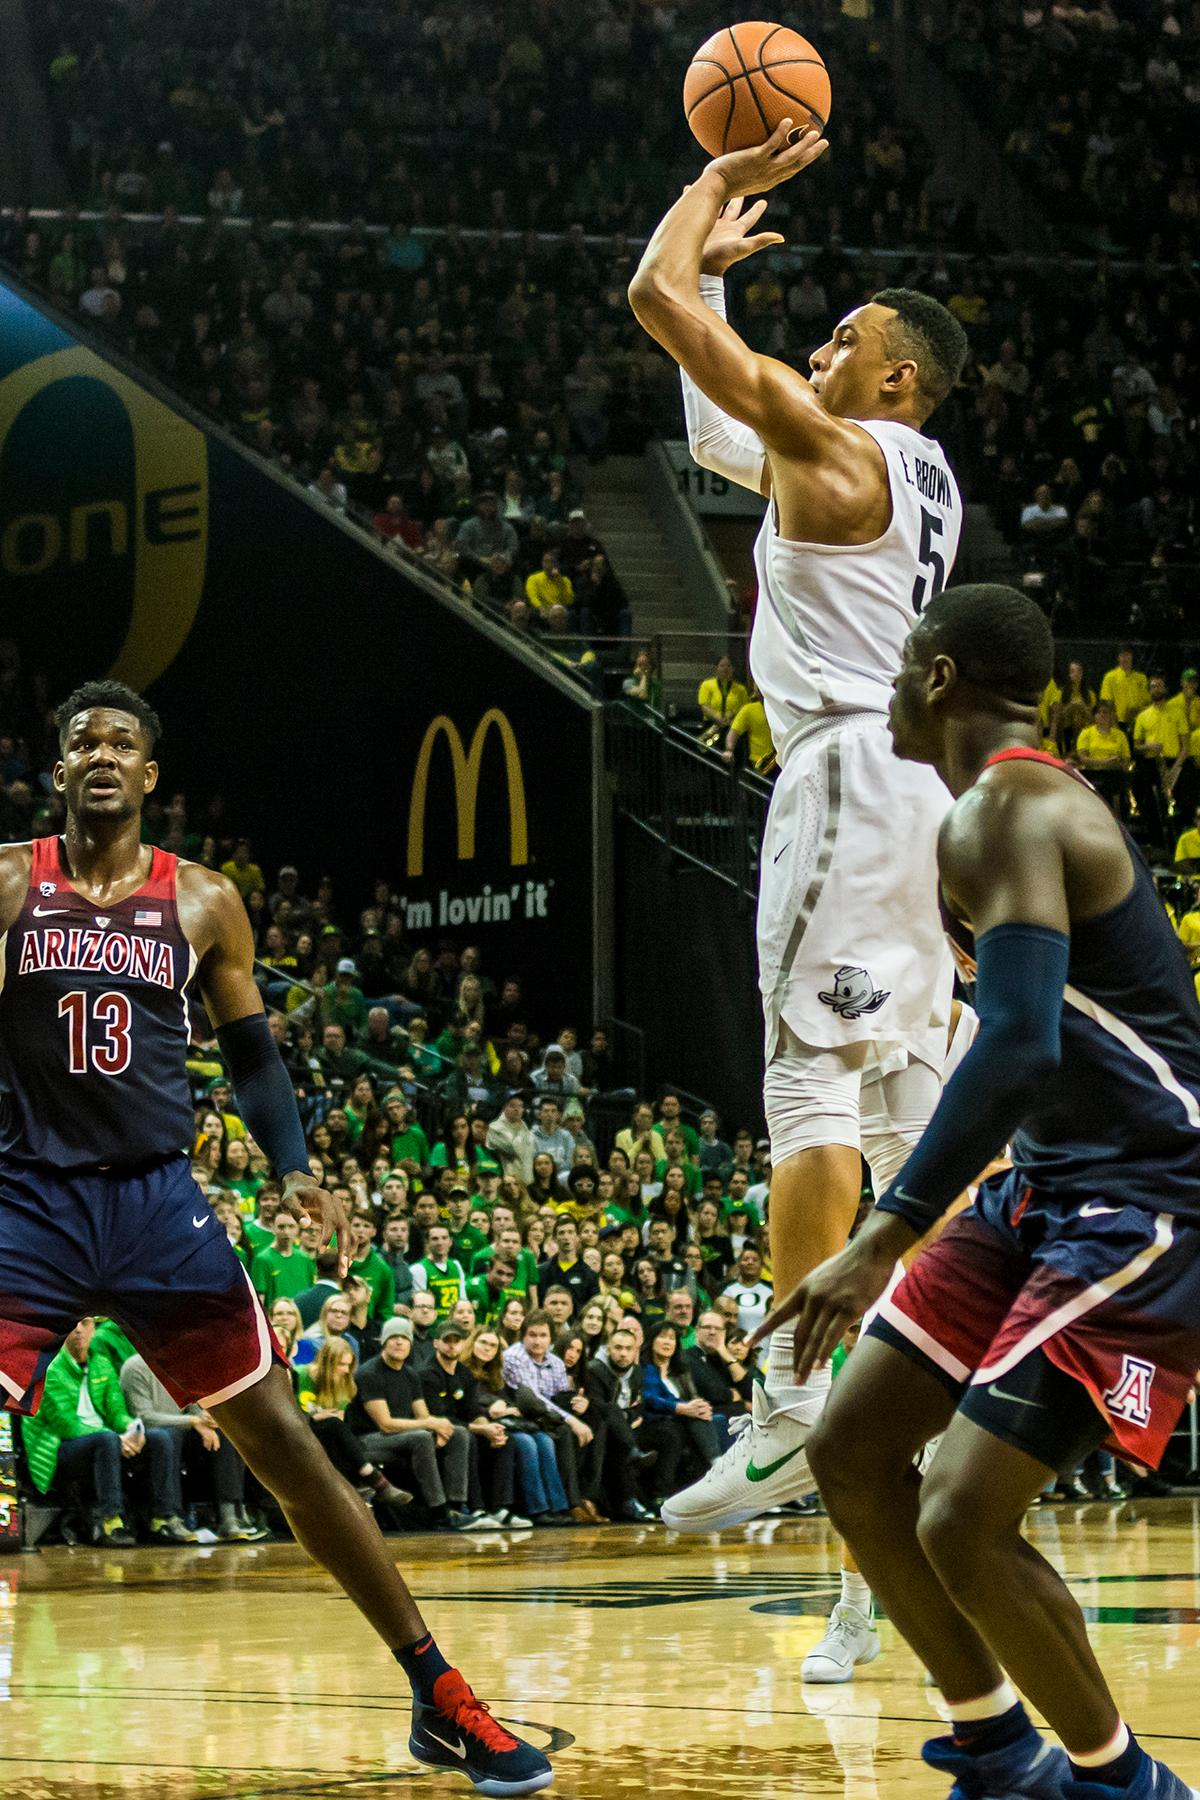 Oregon's Elijah Brown (5) shoots against the Arizona Wildcats in their matchup at Matthew Knight Arena Saturday. The Ducks upset the fourteenth ranked Wildcats 98-93 in a stunning overtime win in front of a packed house of over 12,000 fans for their final home game to improve to a 19-10 (9-7 PAC-12) record on the season. Oregon will finish out regular season play on the road in Washington next week against Washington State on Thursday, then Washington on the following Saturday. (Photo by Colin Houck)